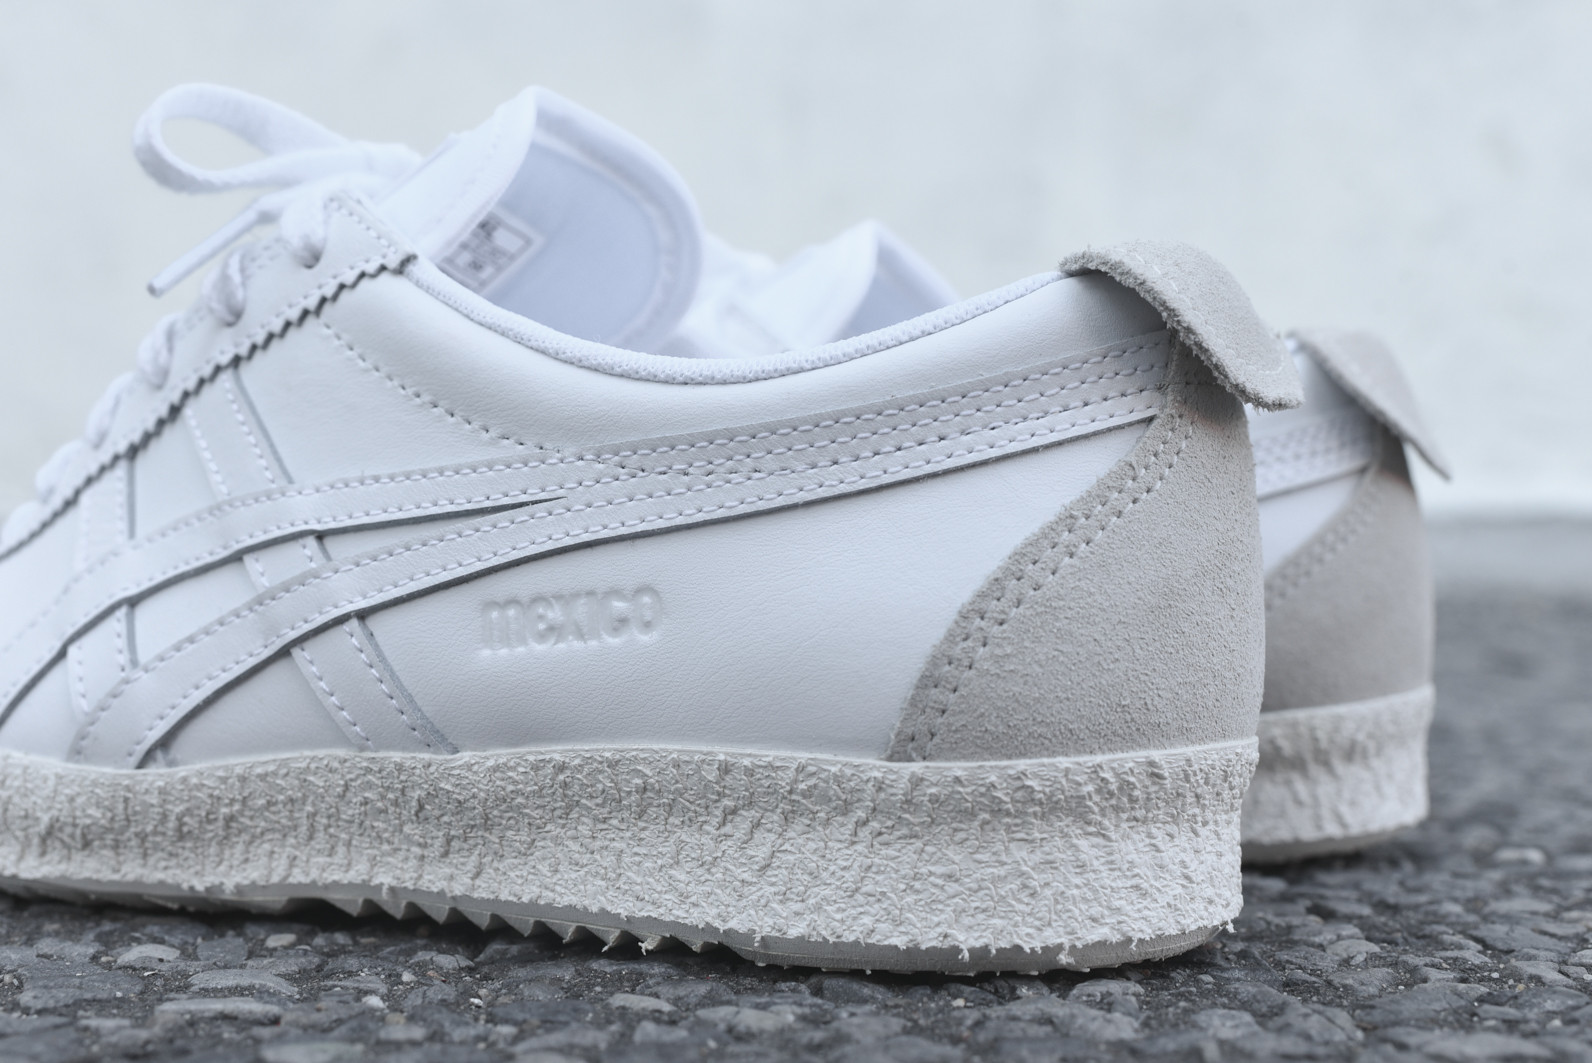 newest 9a002 0d6e4 The Onitsuka Tiger Mexico Delegation Comes In A Subtle White ...